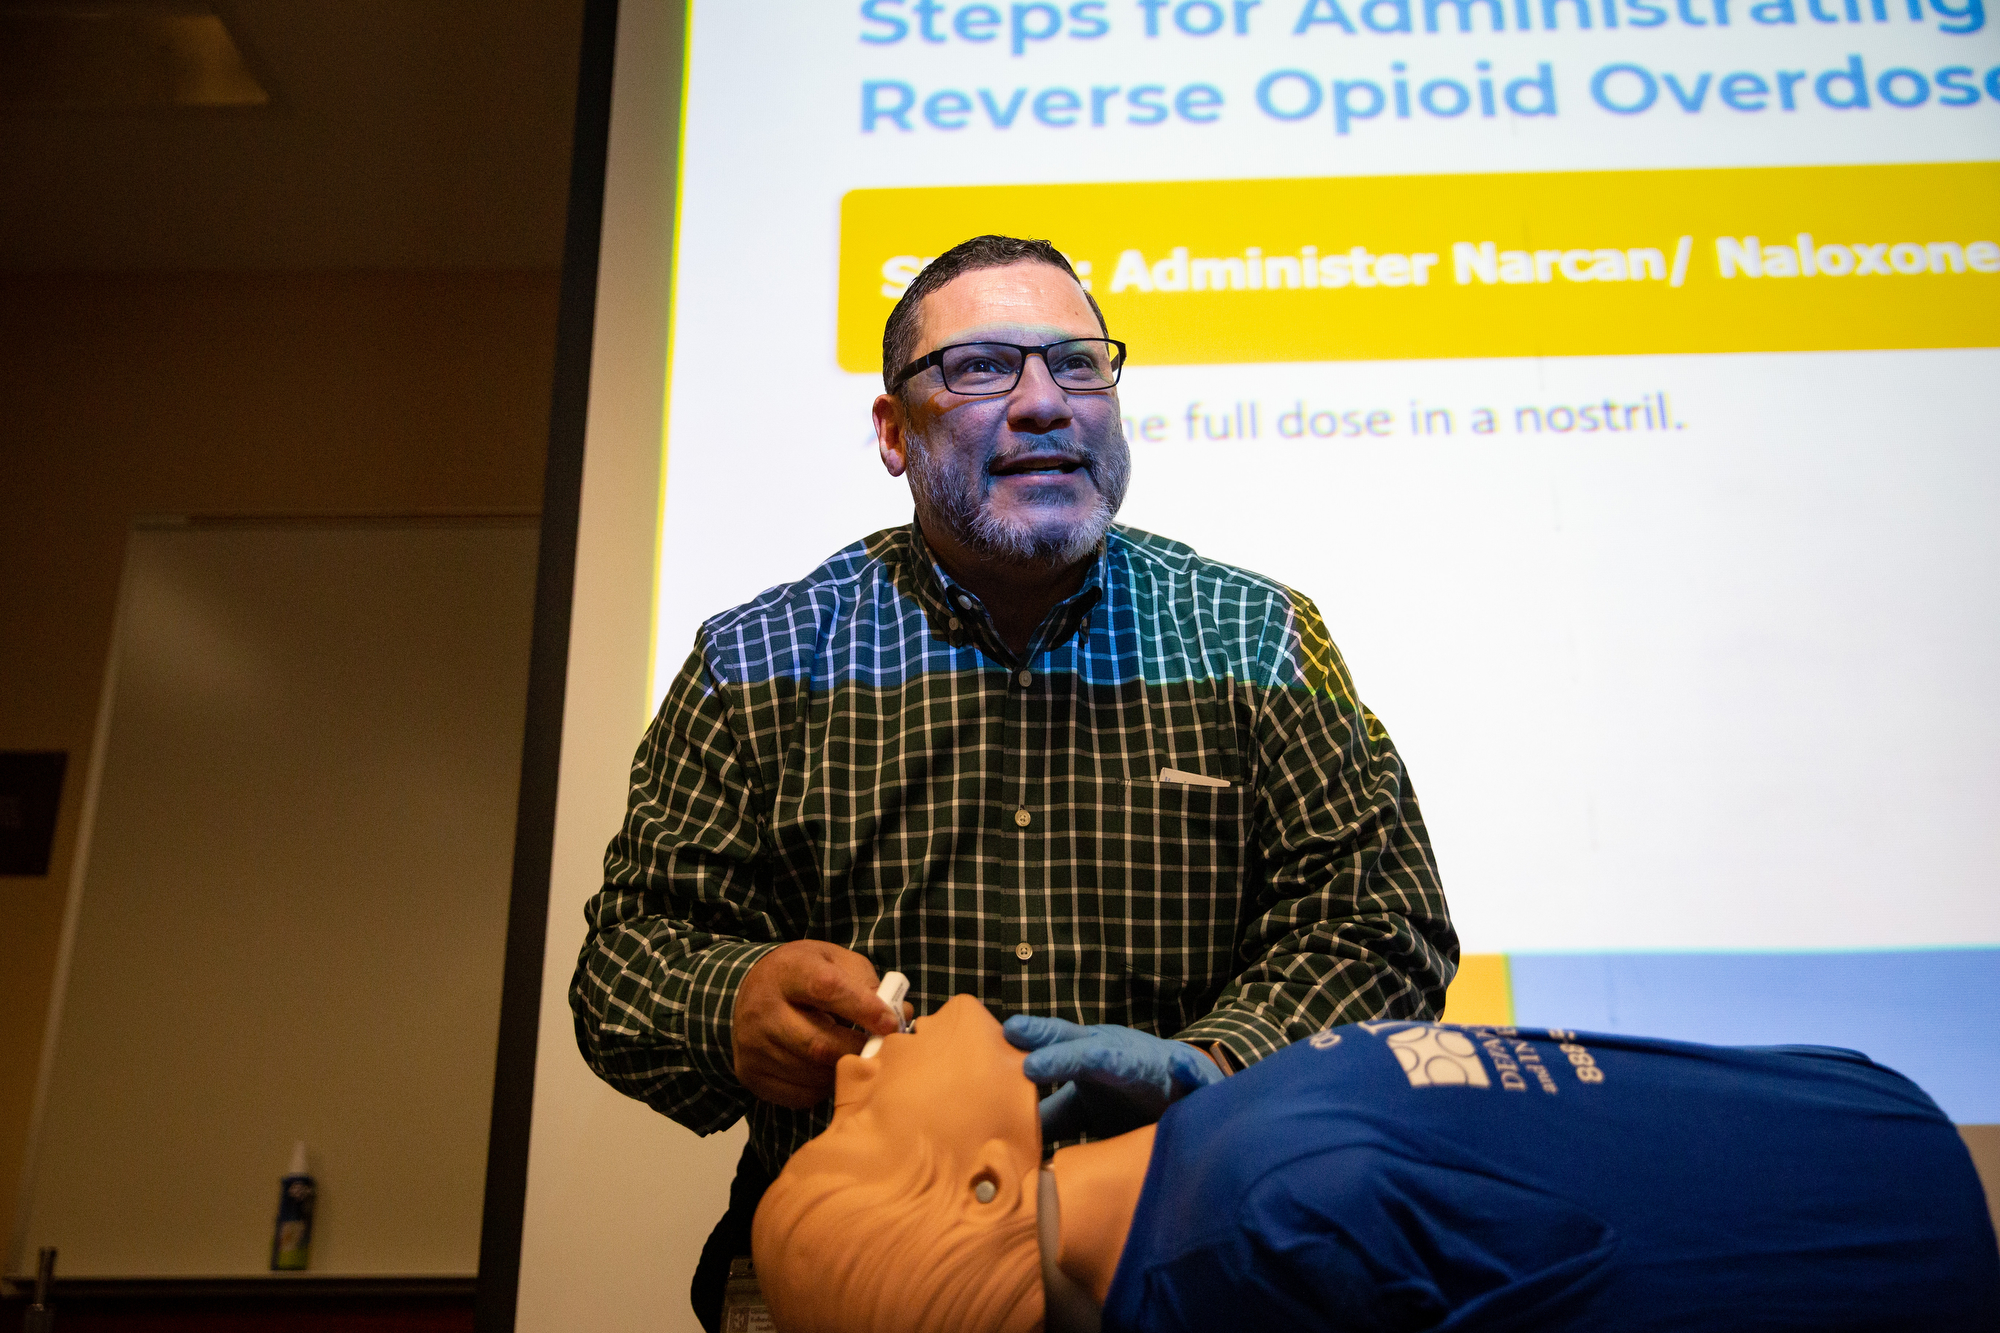 January 7, 2019 — State Senator Art Haywood and State Representative Chris Rabb co-hosted an event to allow constituents to learn about Narcan nasal spray and how to save someone from an opioid overdose.